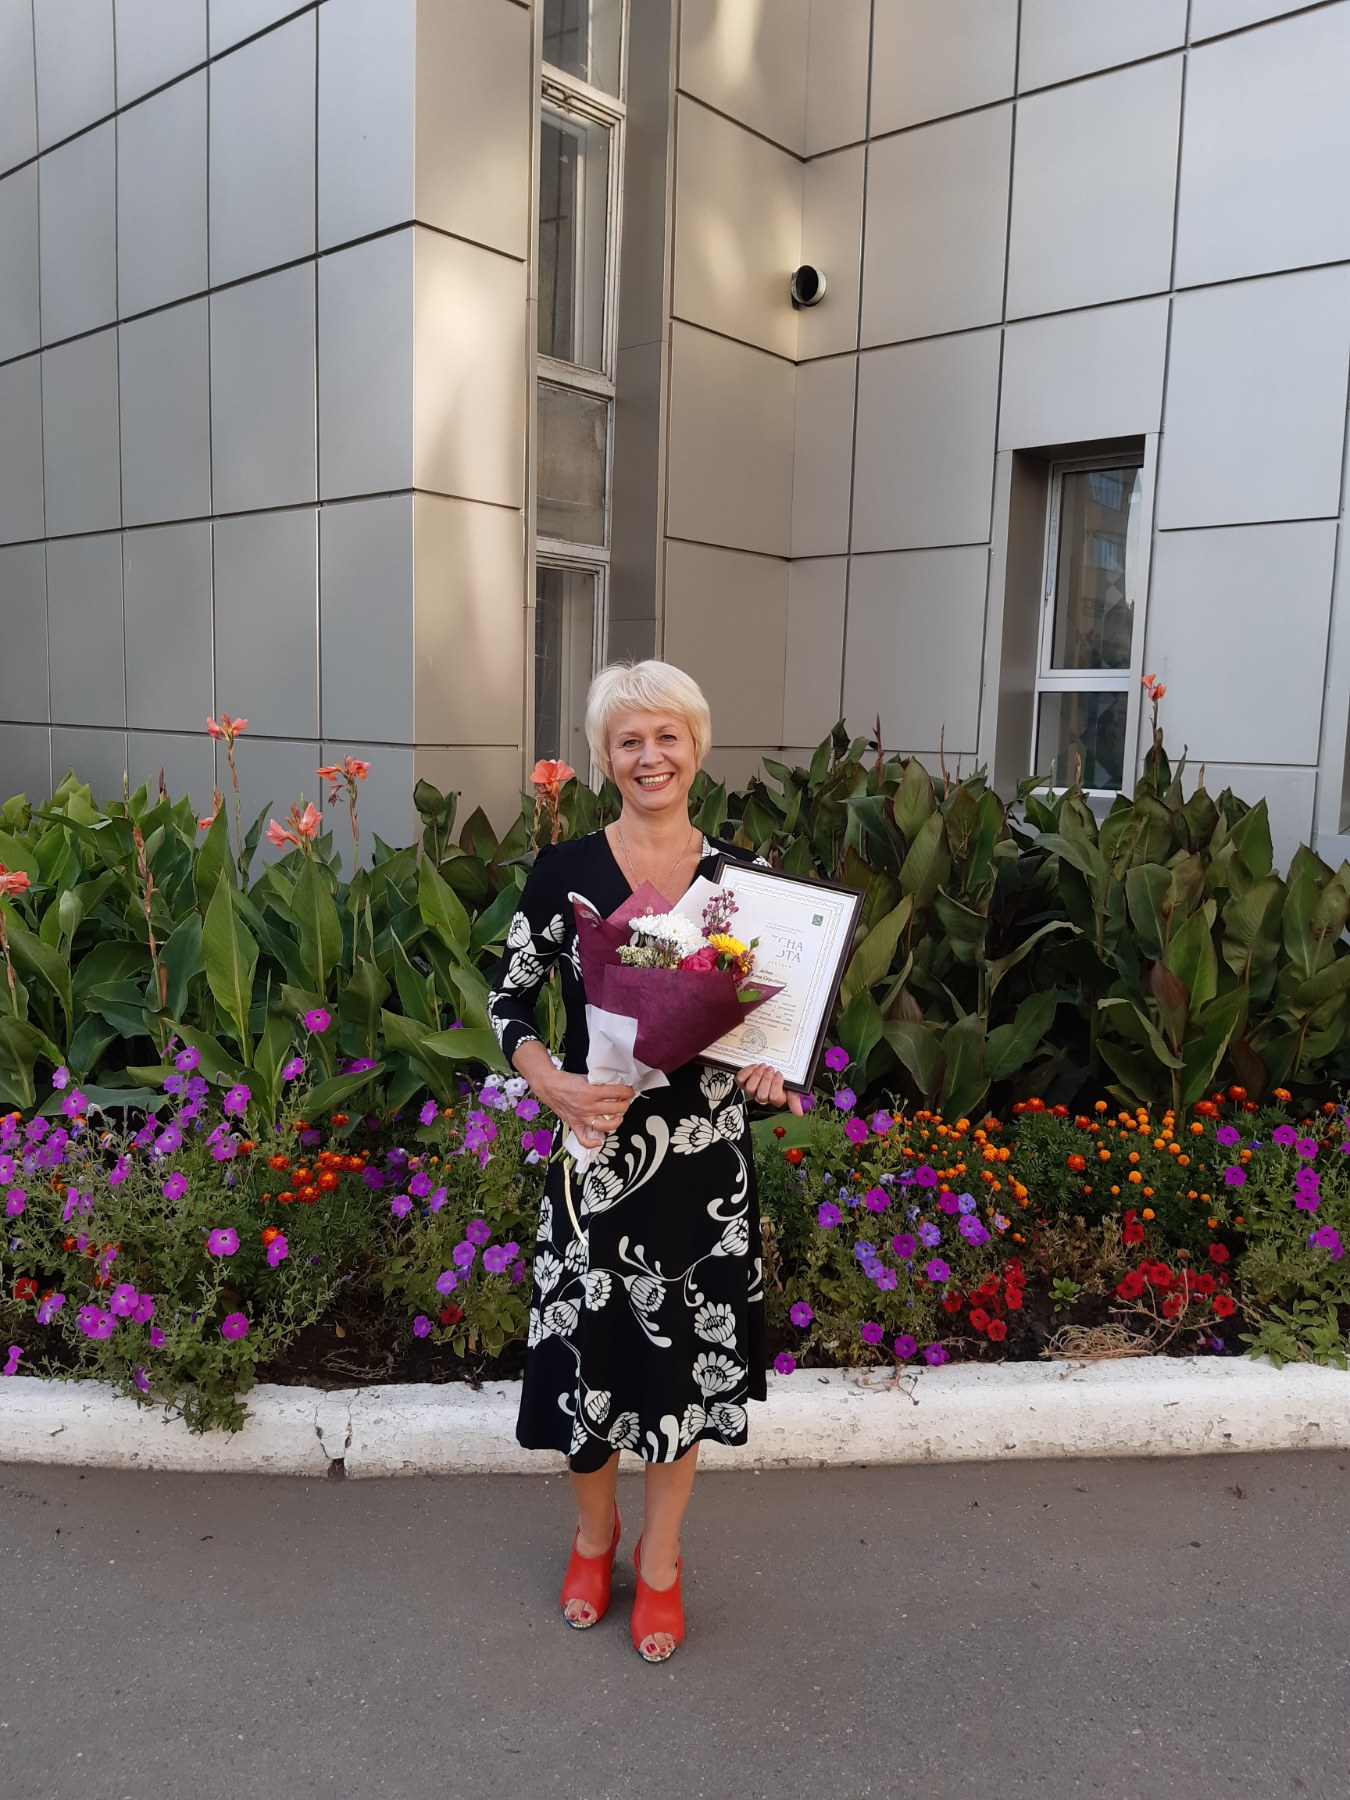 On September 17, 2021 assoc. prof. Zuikina S. S. was awarded with a Diploma of the Department of Health.